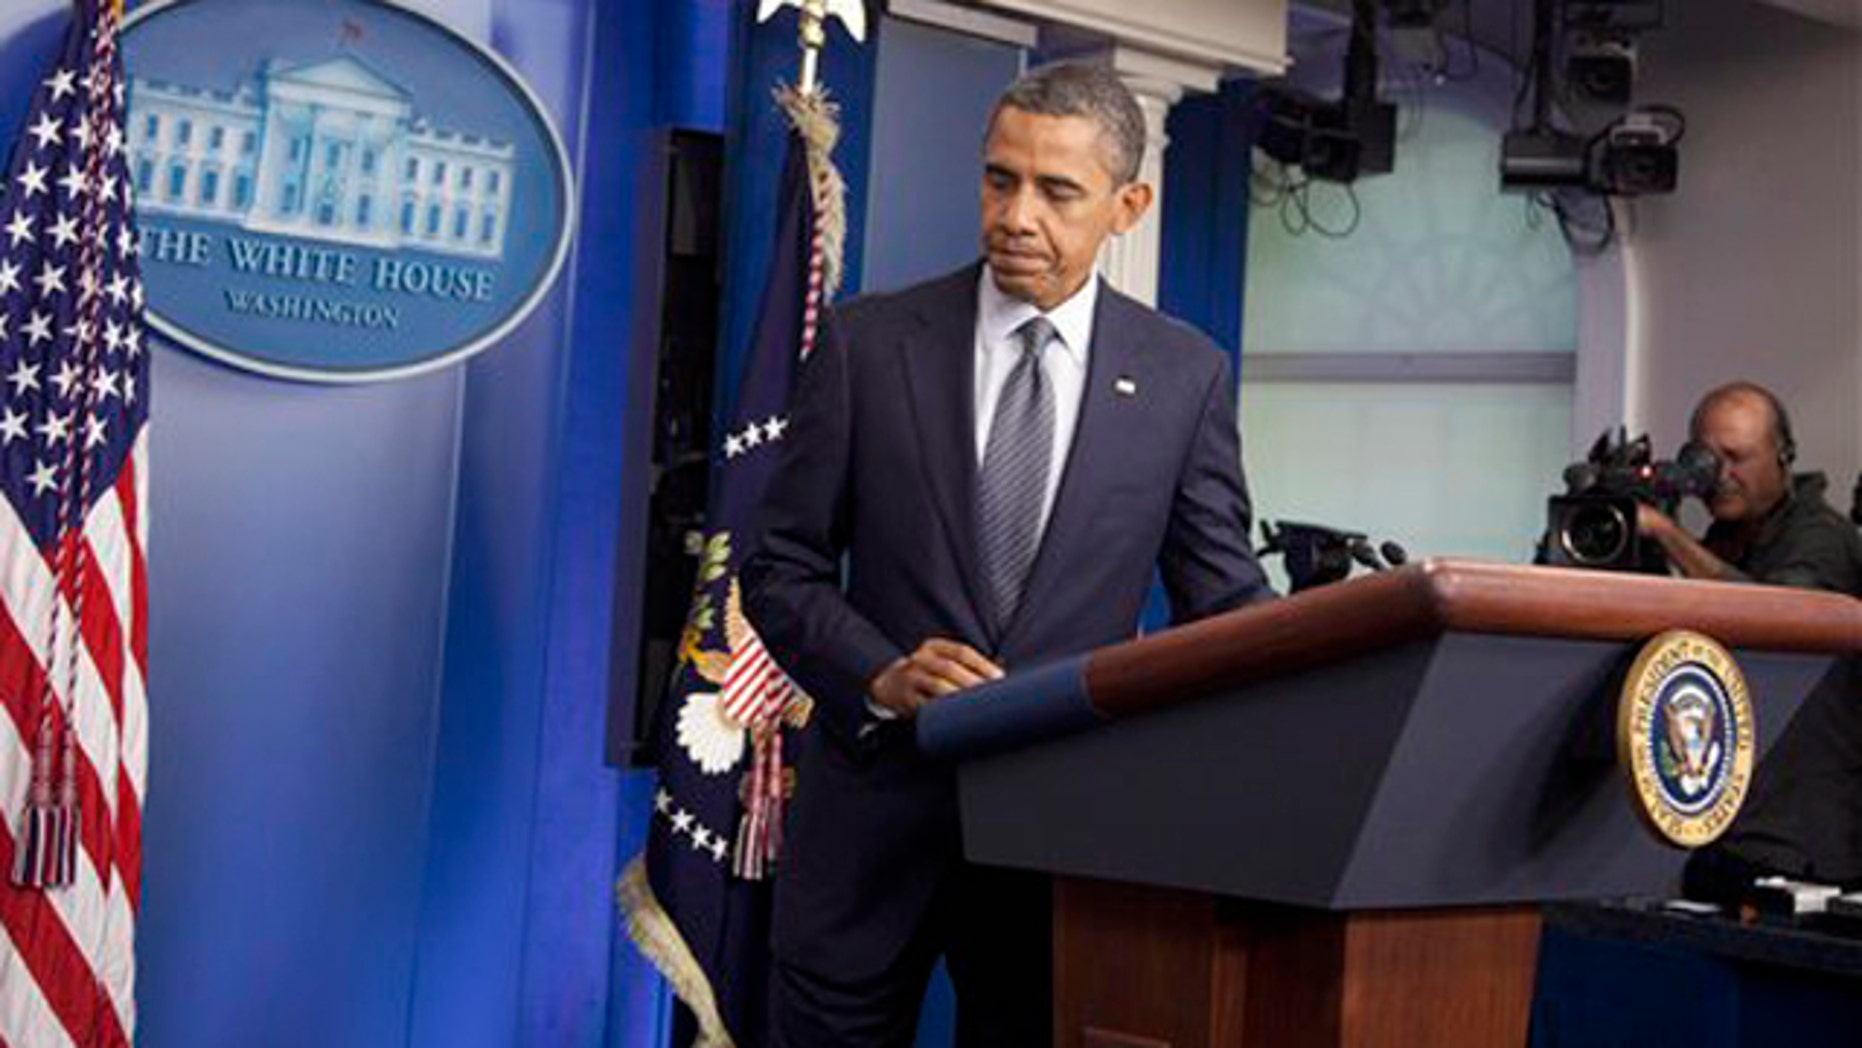 Oct. 21, 2011: President Obama leaves after speaking in the briefing room of the White House.